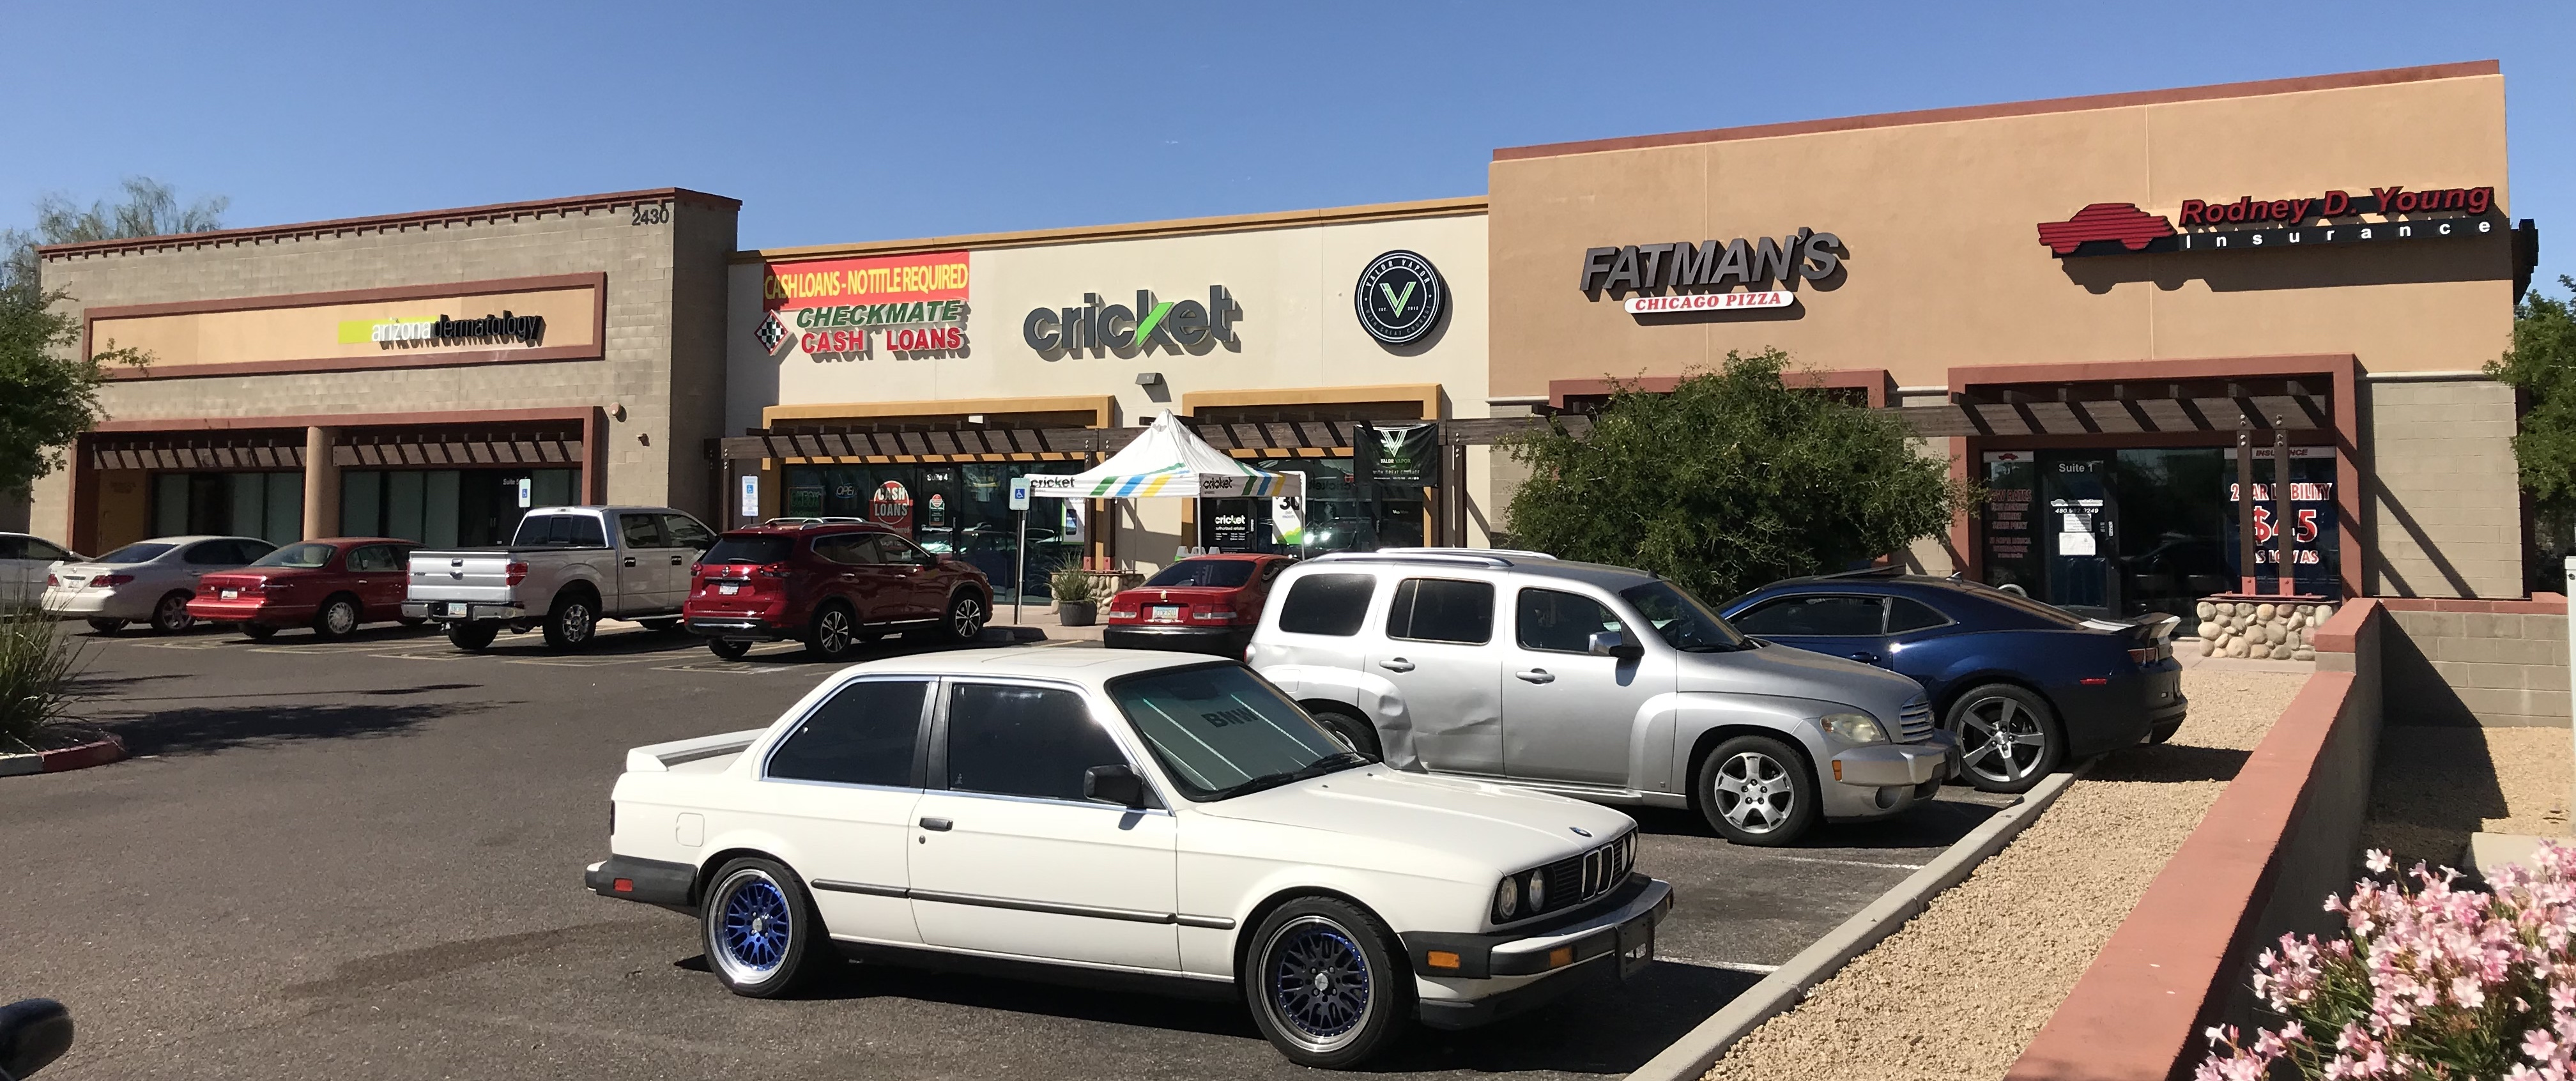 Apache Trail Marketplace | Retail Space For Lease In Phoenix AZ | Vestis Group